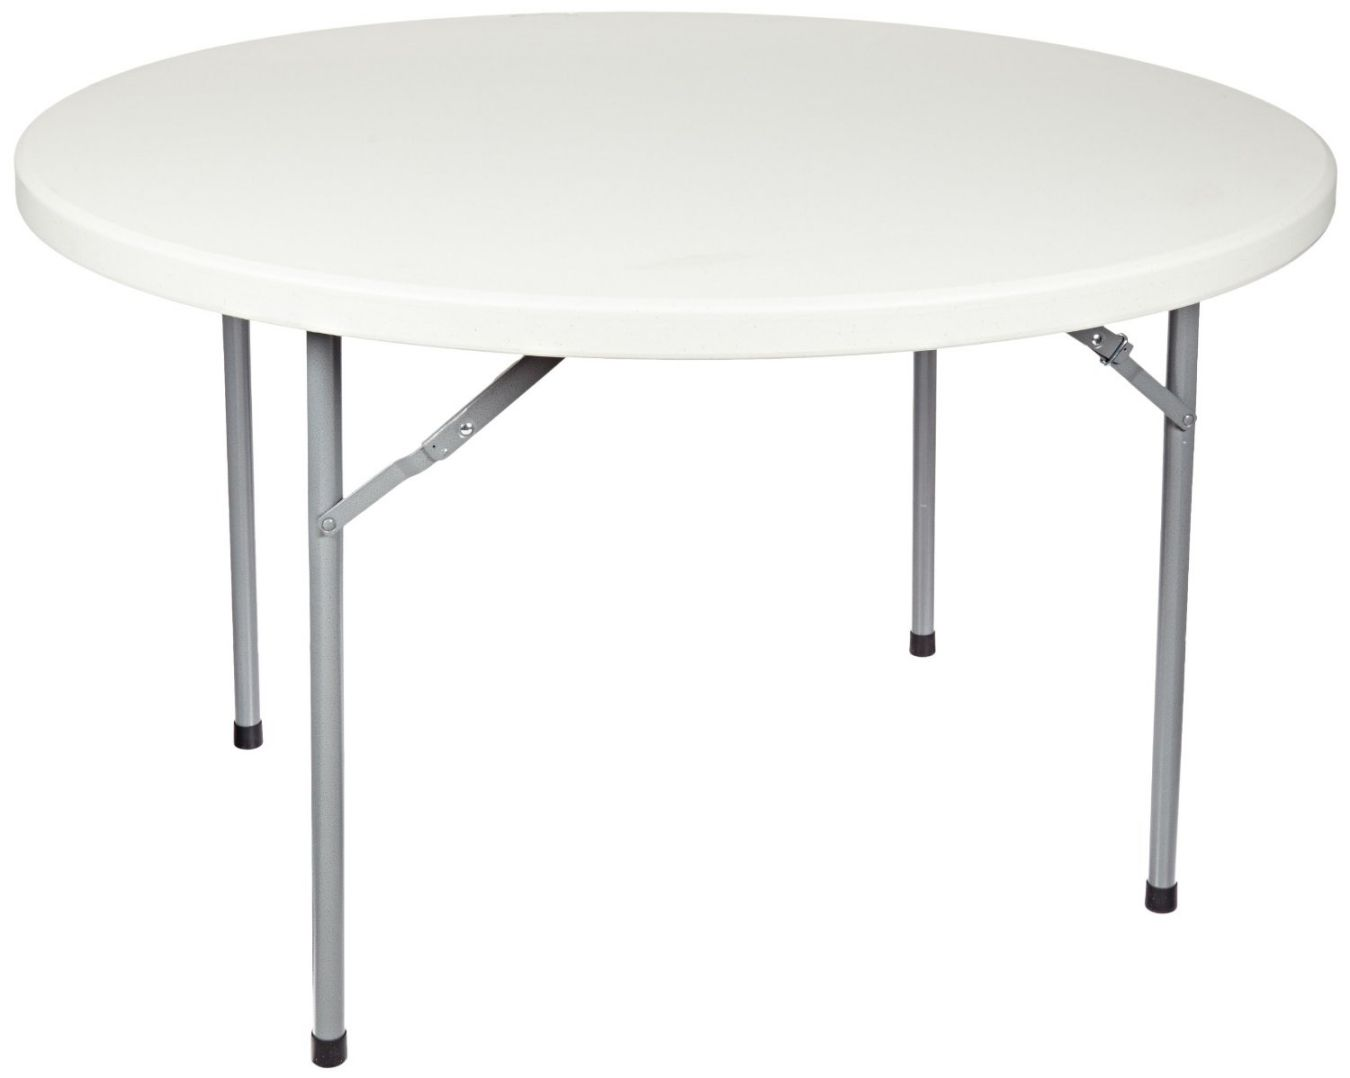 National-Public-Seating-BT-R-Series-Steel-Frame-Round-Blow-Molded-Plastic-Top-Folding-Table-700-lbs-Capacity